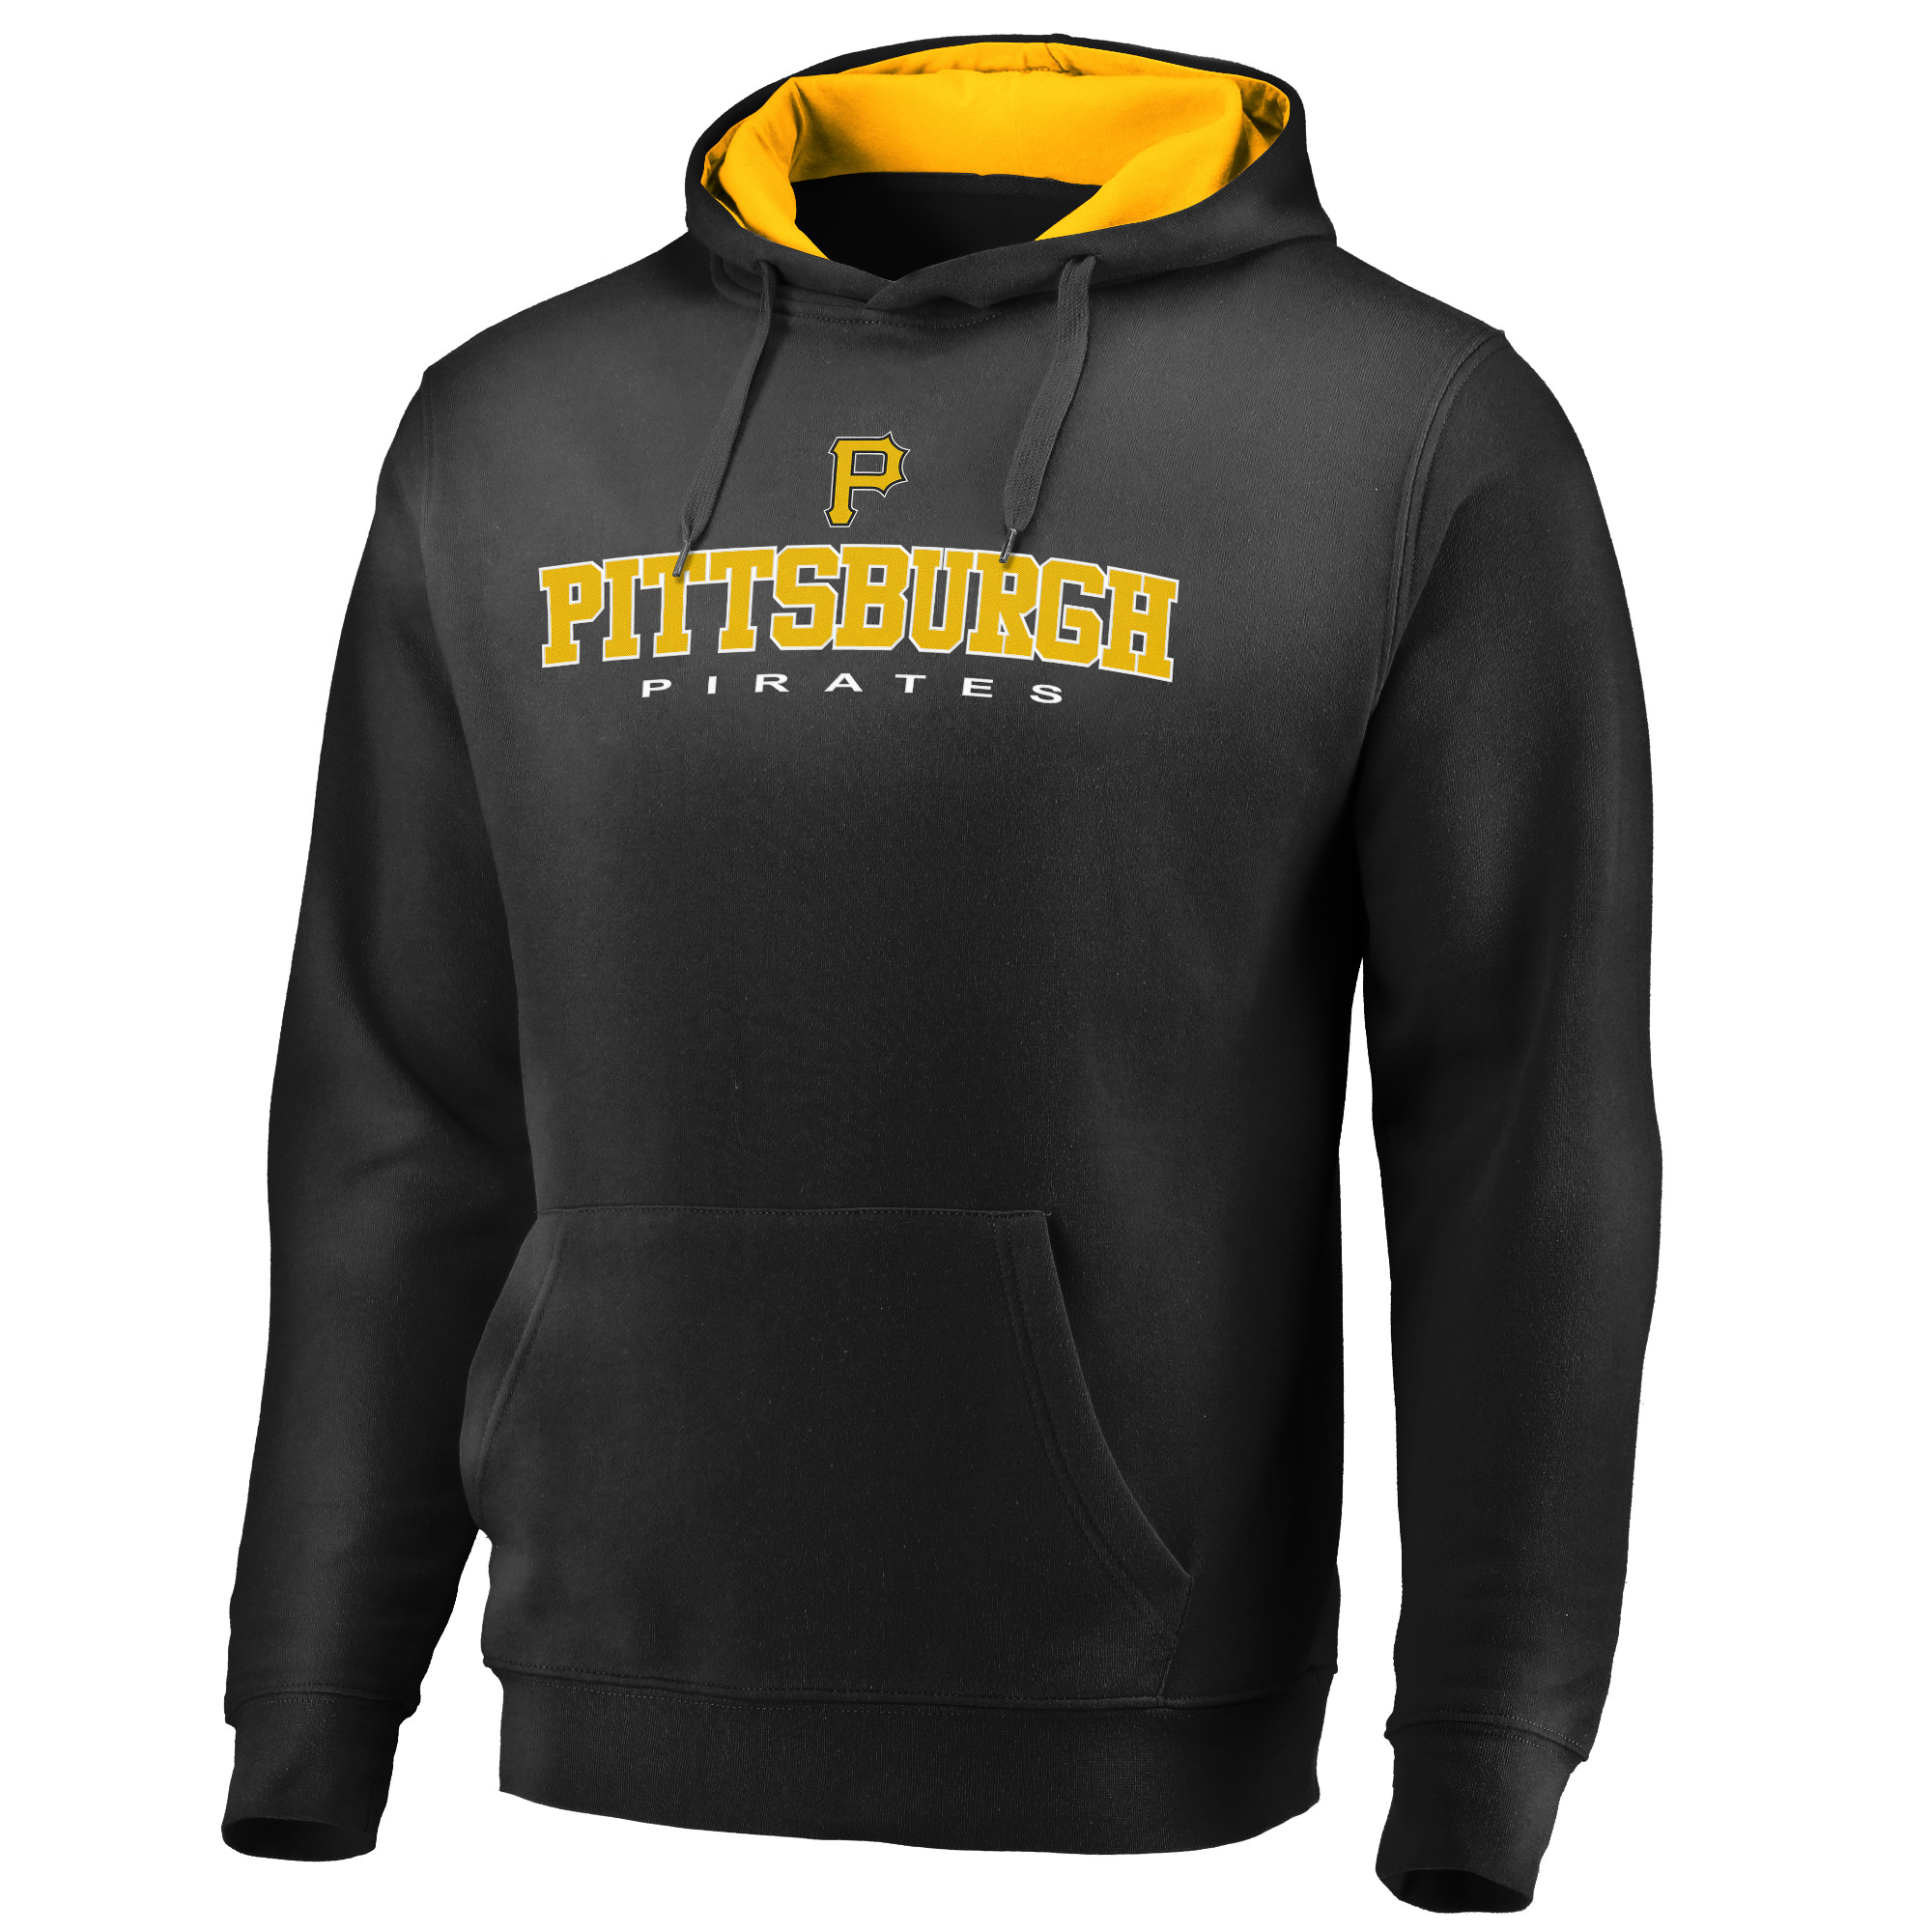 Men's Fanatics Branded Black Pittsburgh Pirates Big & Tall Block Lineup Zone Fleece Pullover Hoodie